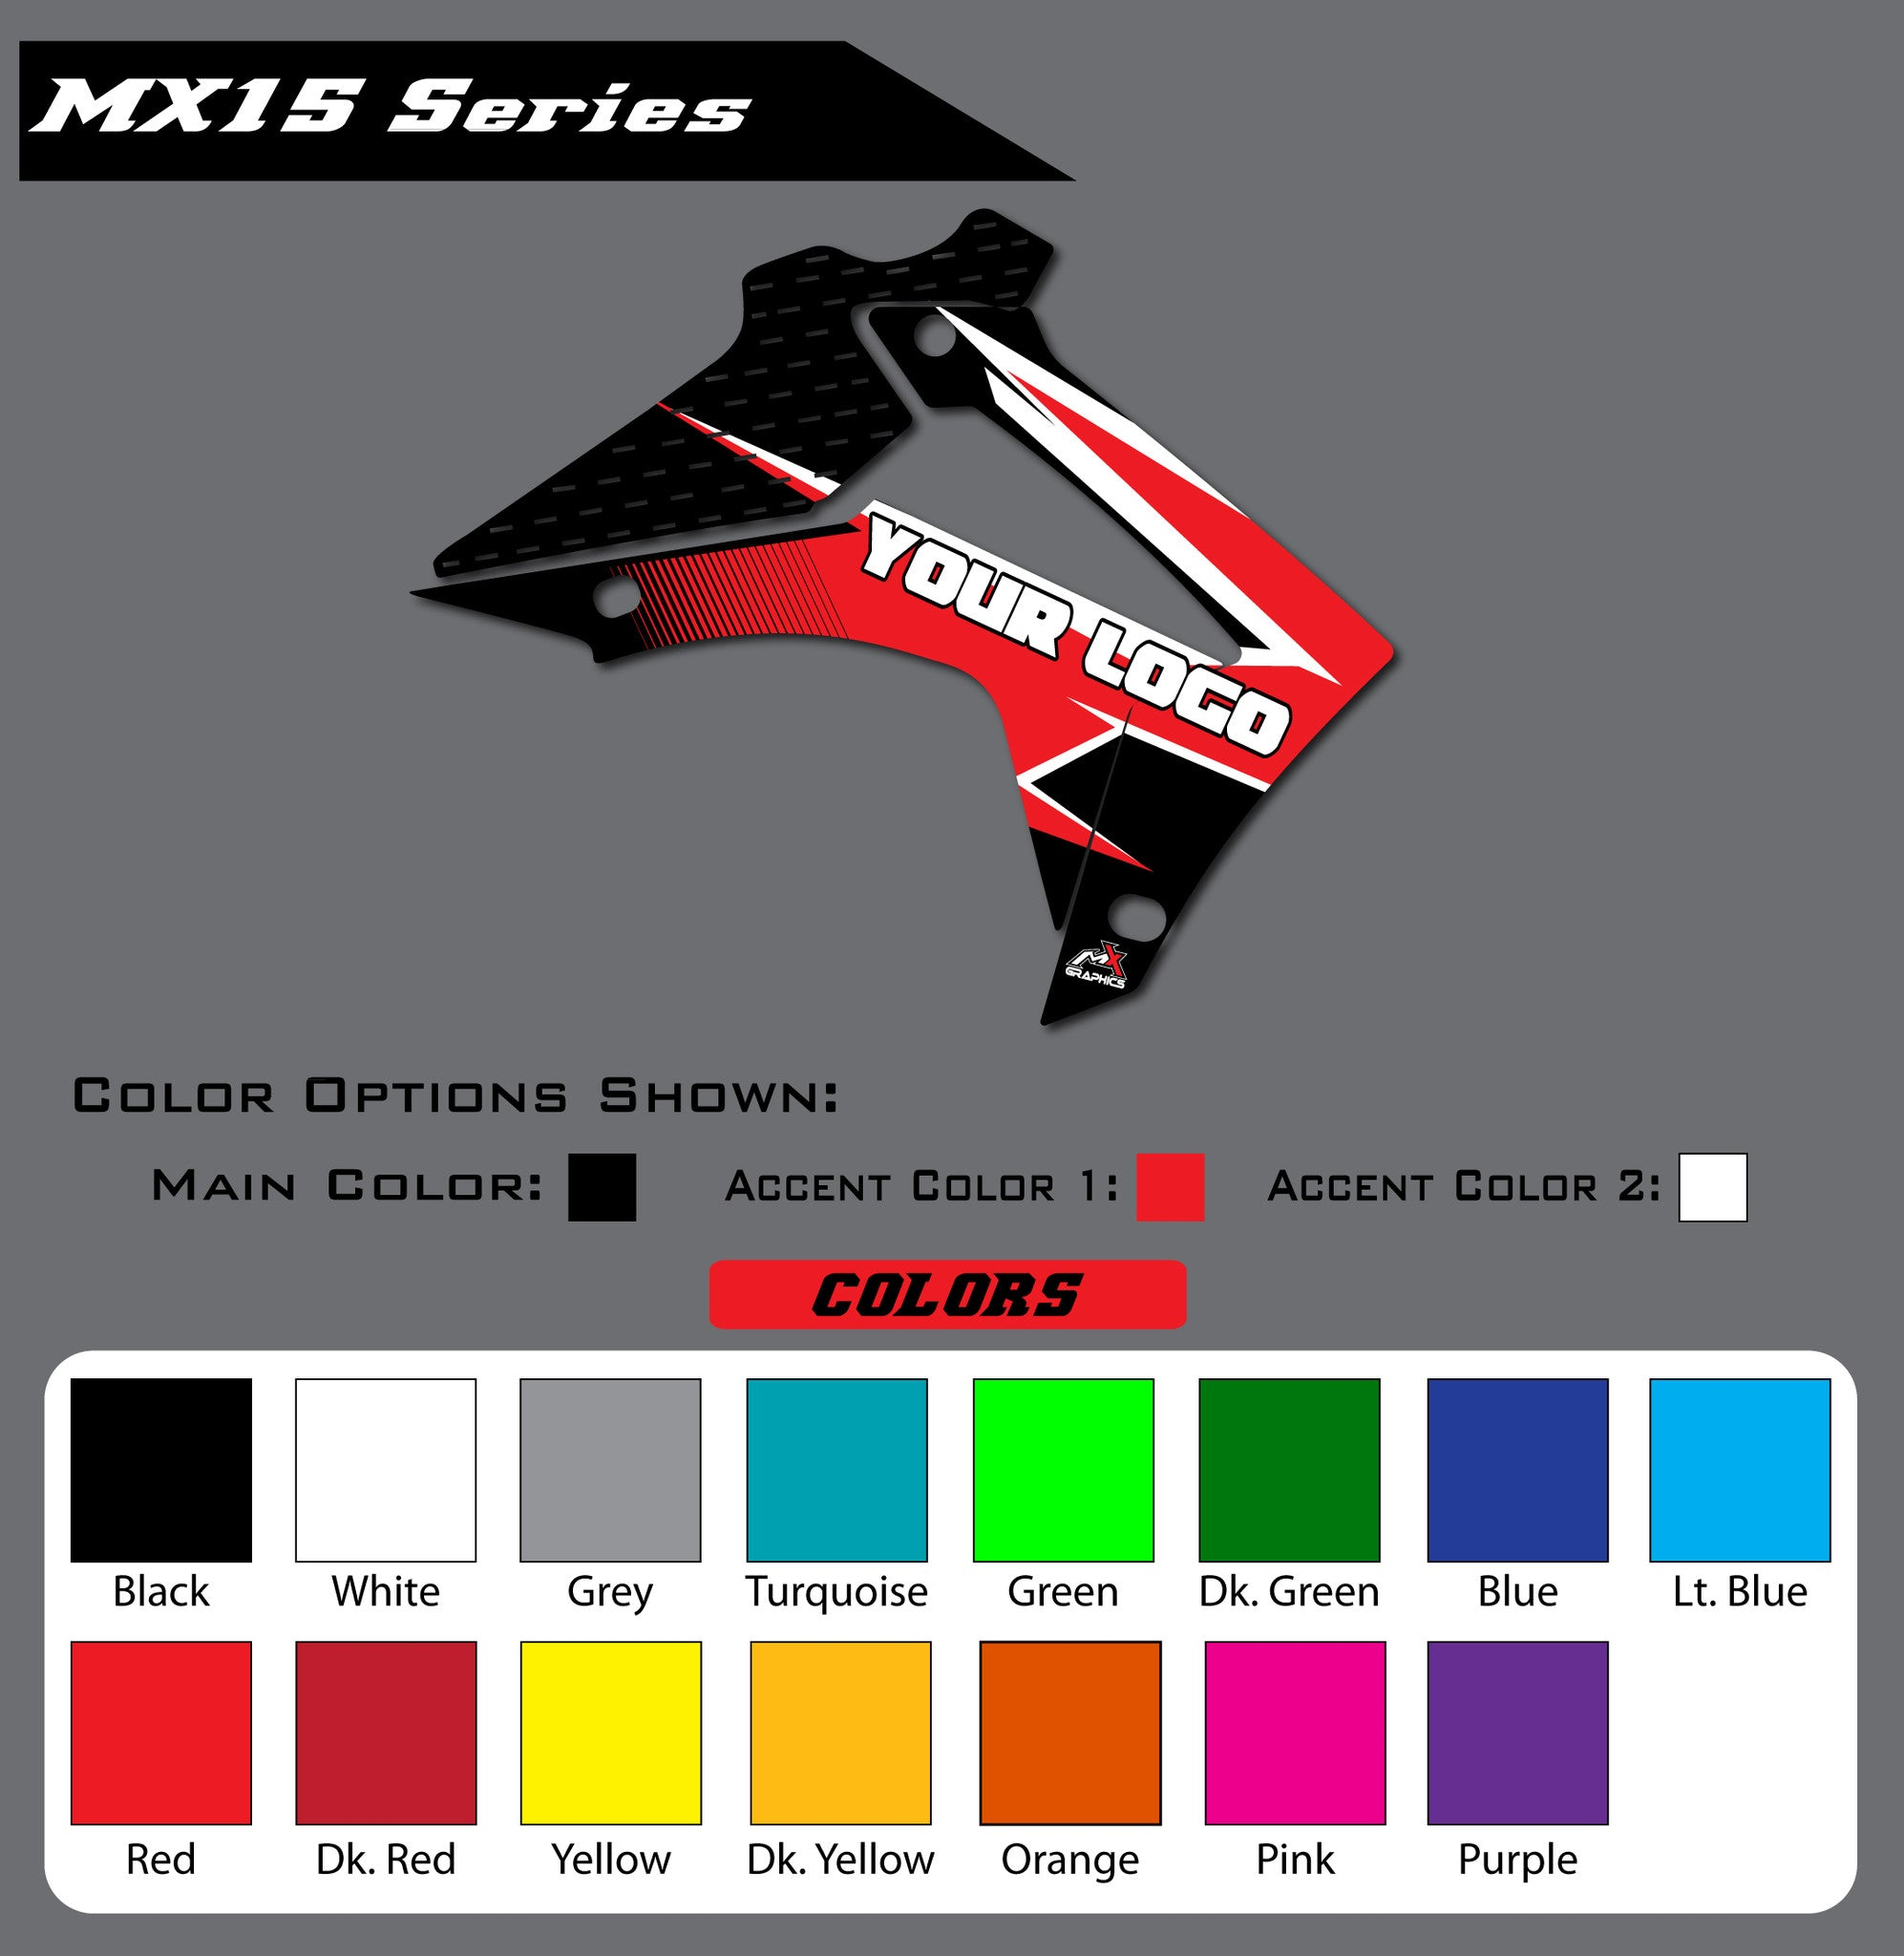 Honda MX15 Shroud Graphics